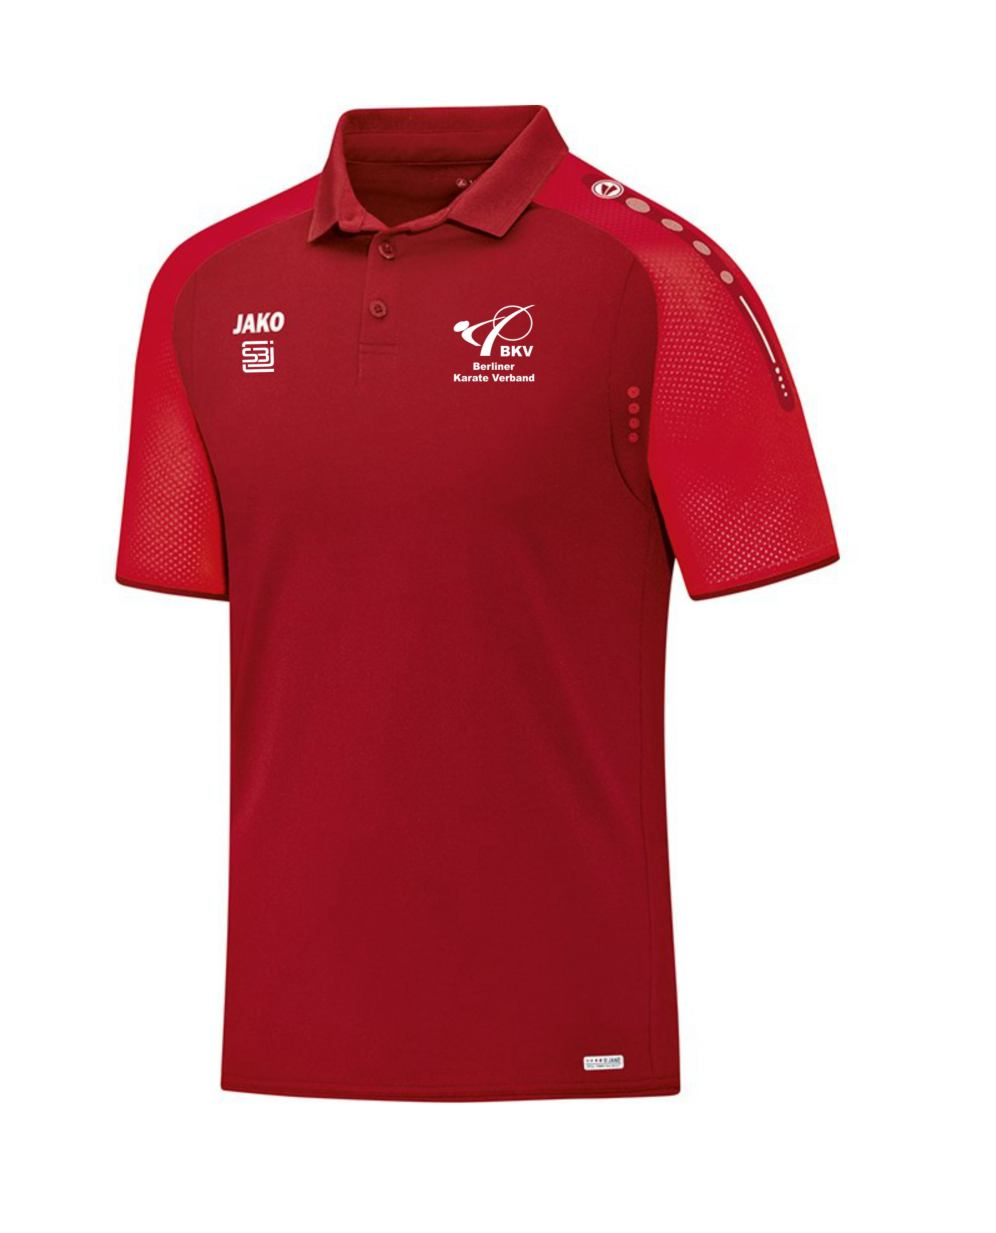 official photos af290 33a1b Polo Shirt rot mit Druck Berliner Karate Verband